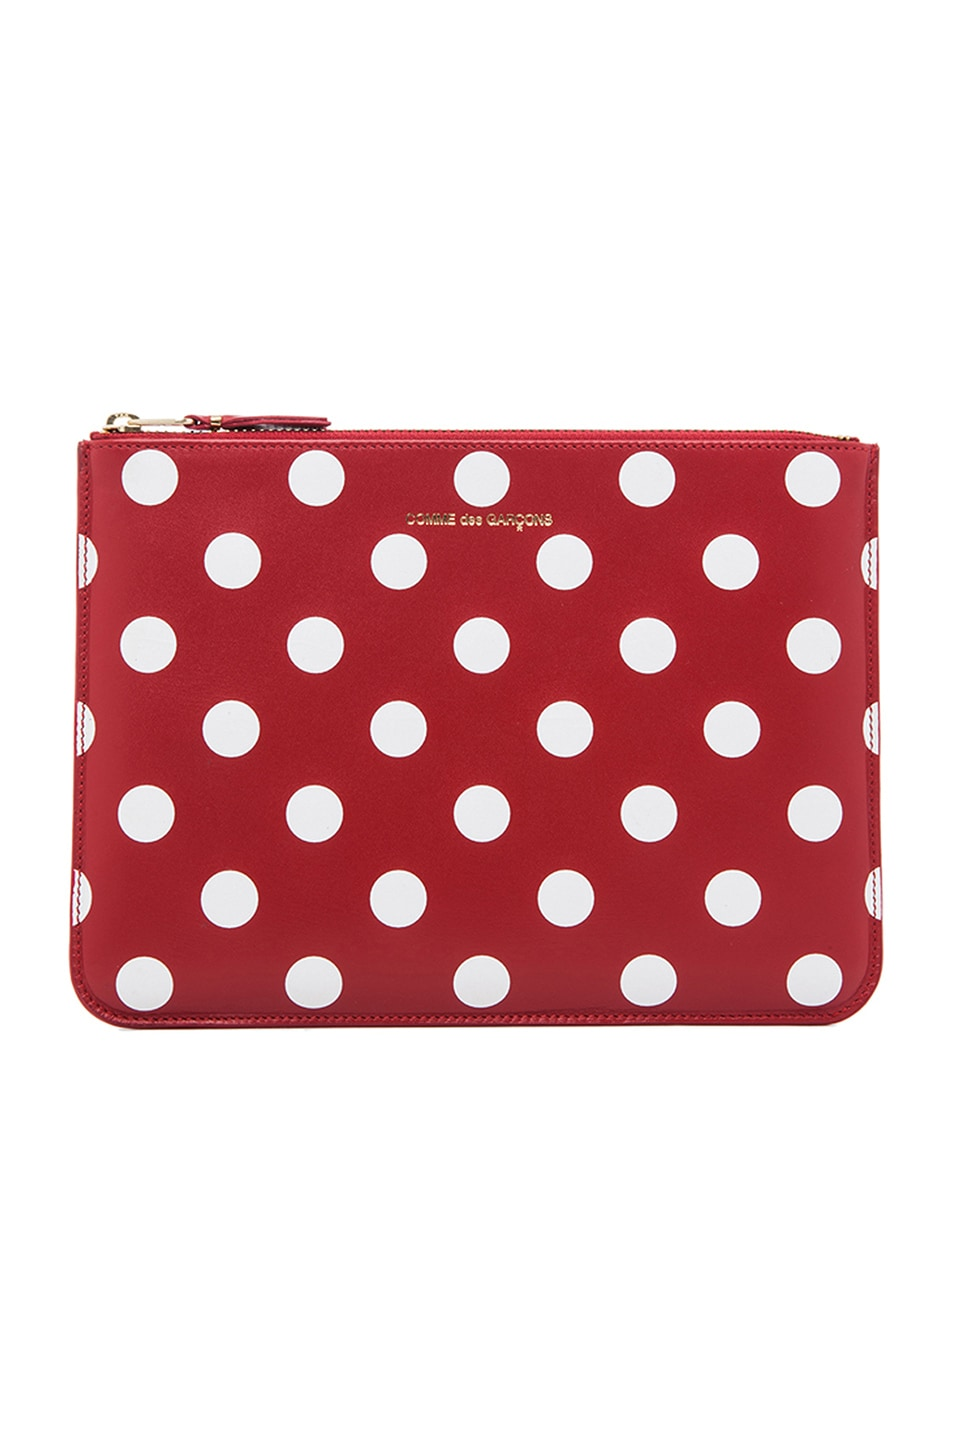 Comme Des Garçons Polka Dot Pouch In Red,geometric Print